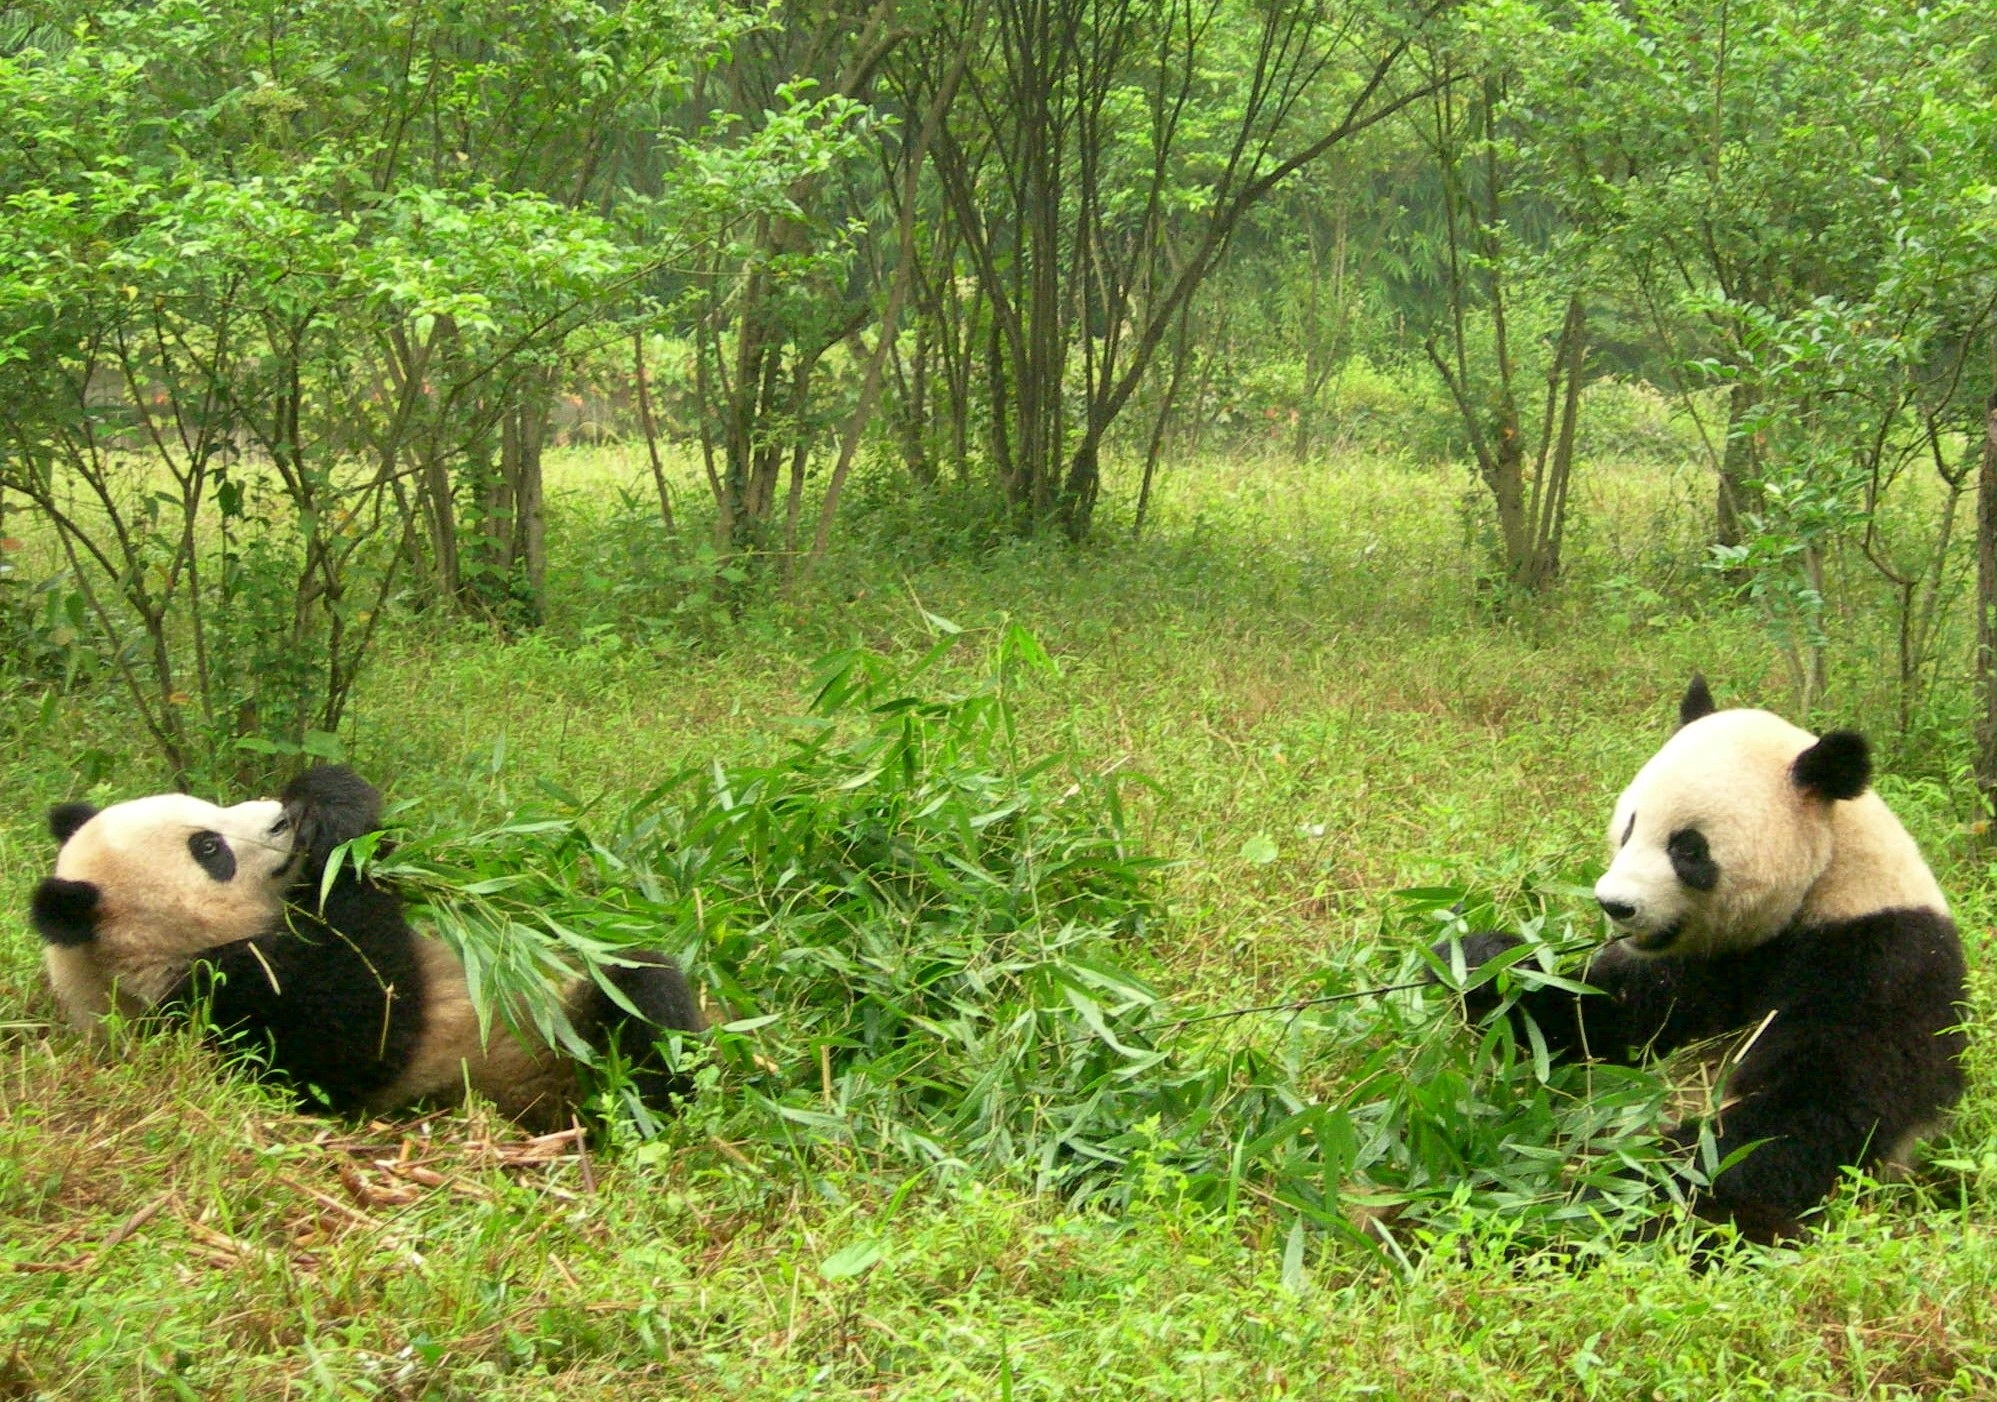 155323 download wallpaper Animals, Grass, Couple, Pair, Food, Pandas screensavers and pictures for free